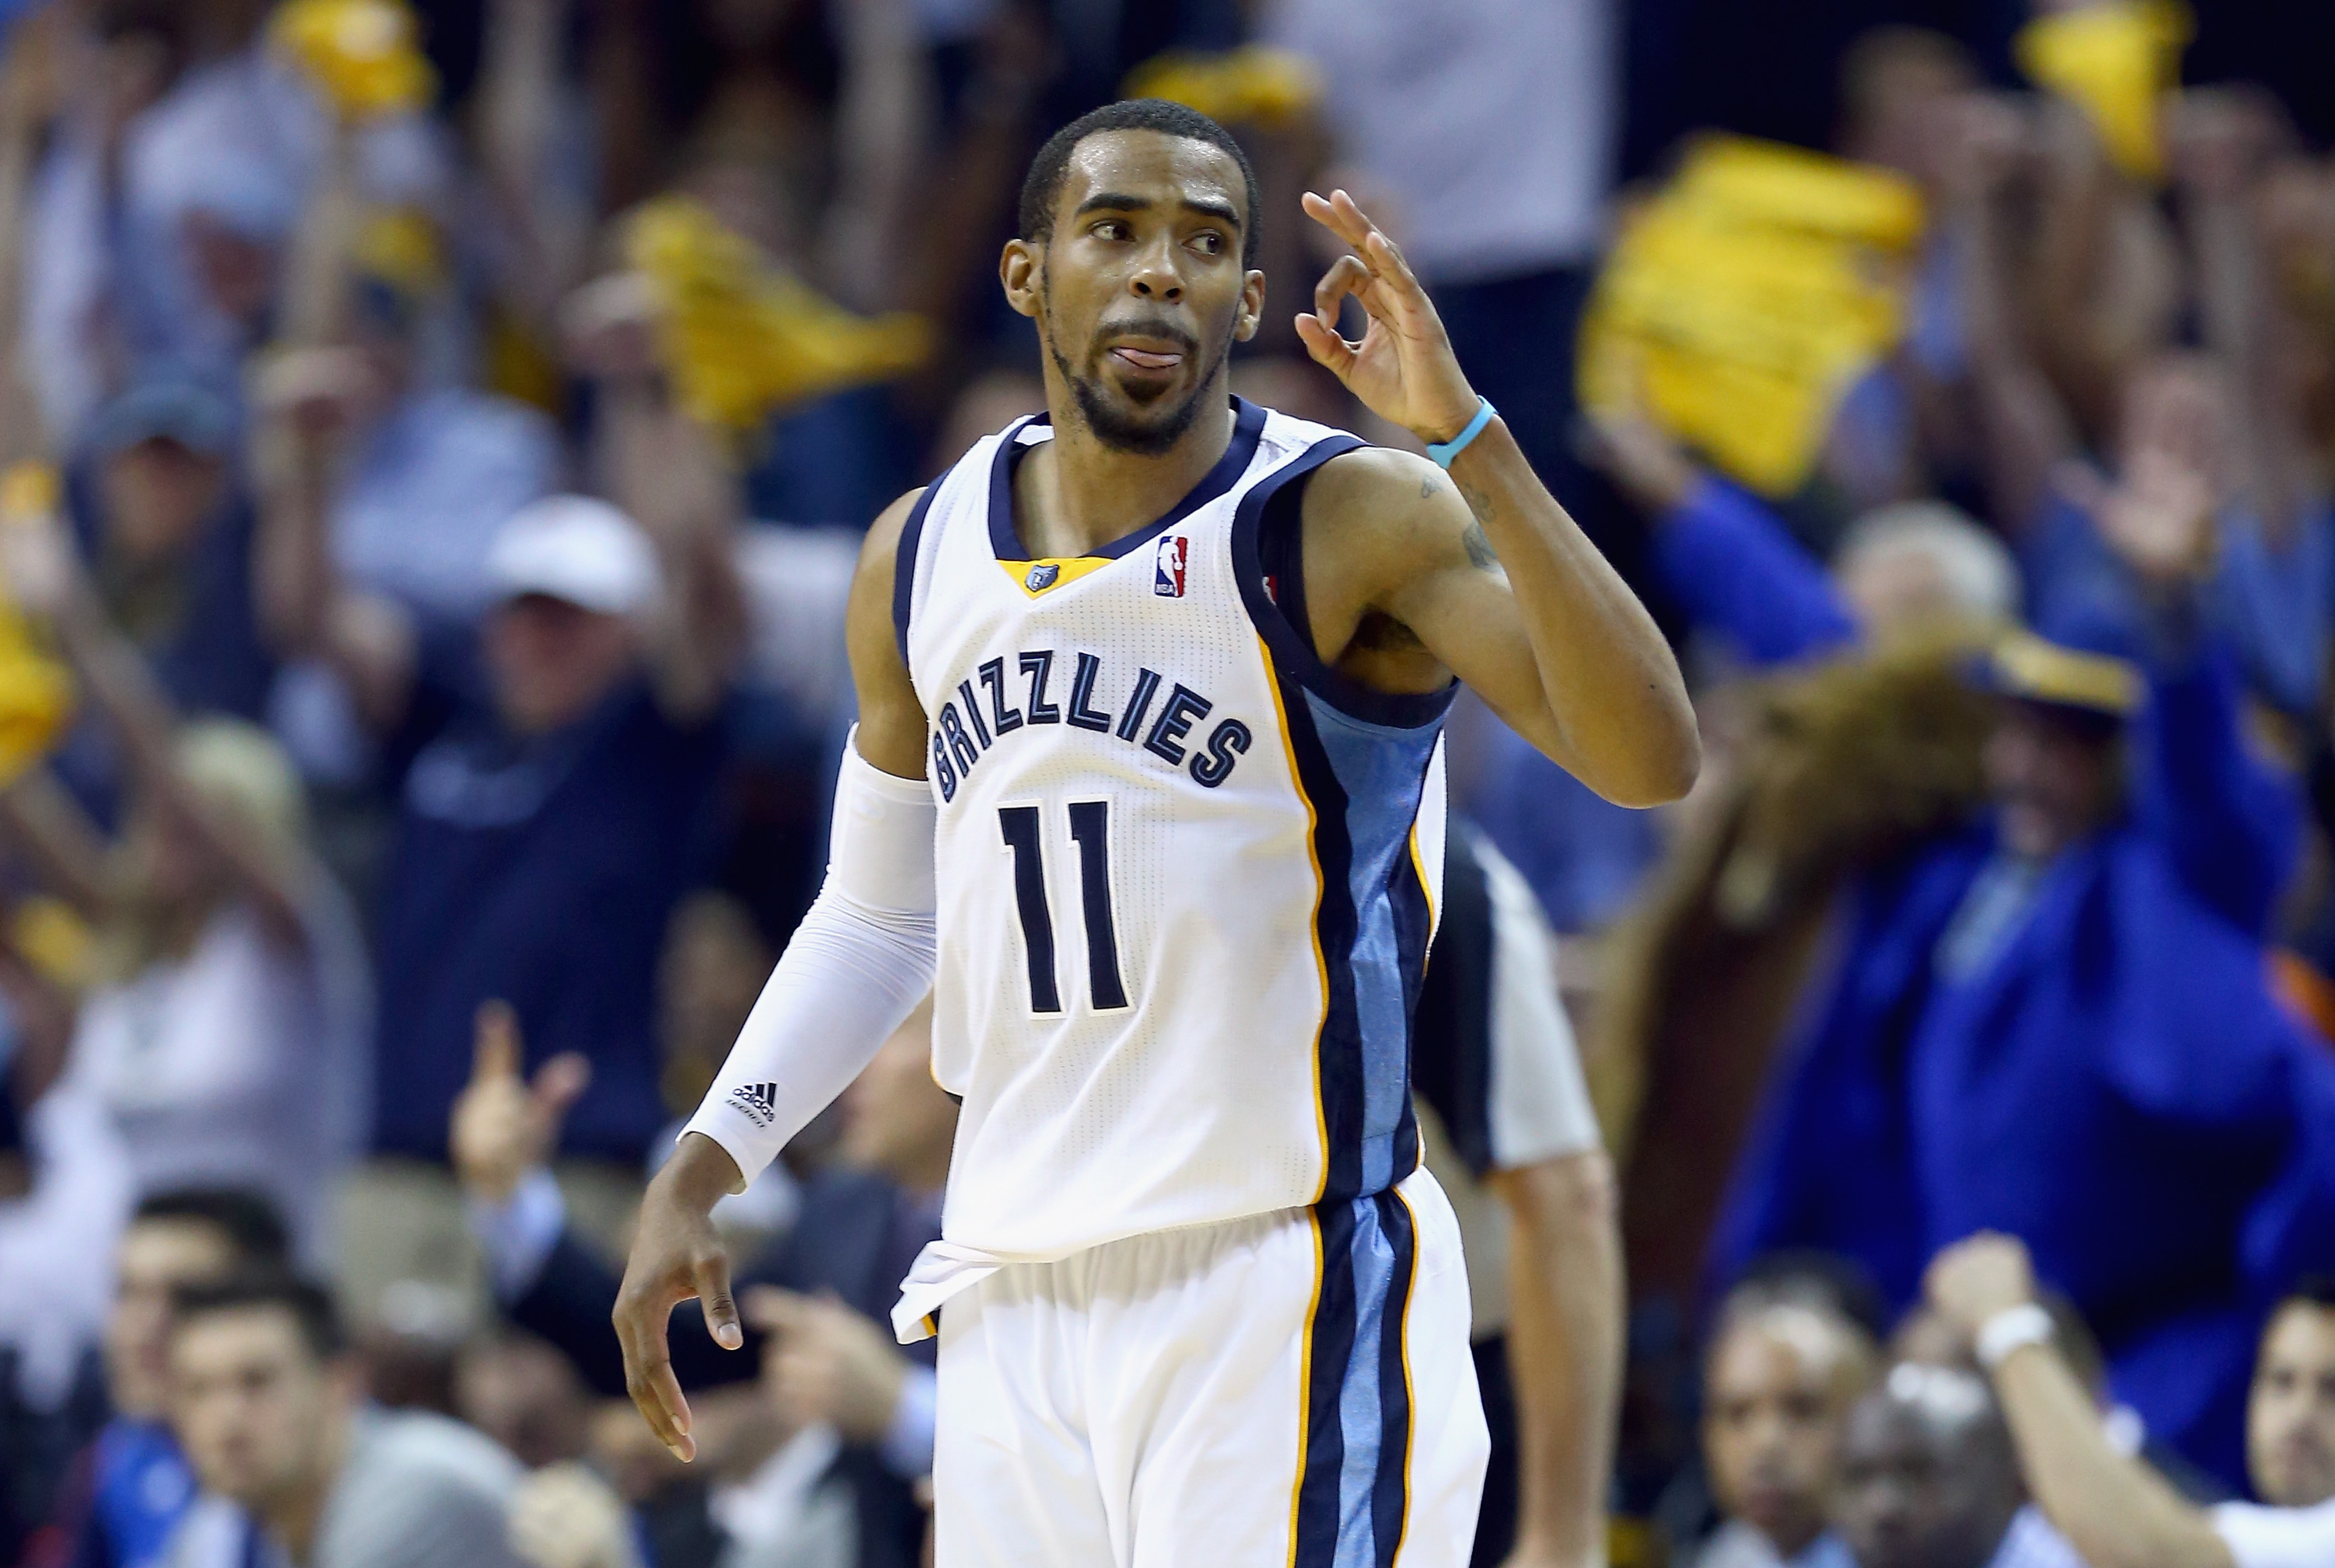 Mike Conley showed some improvements, but still has room to grow his game.